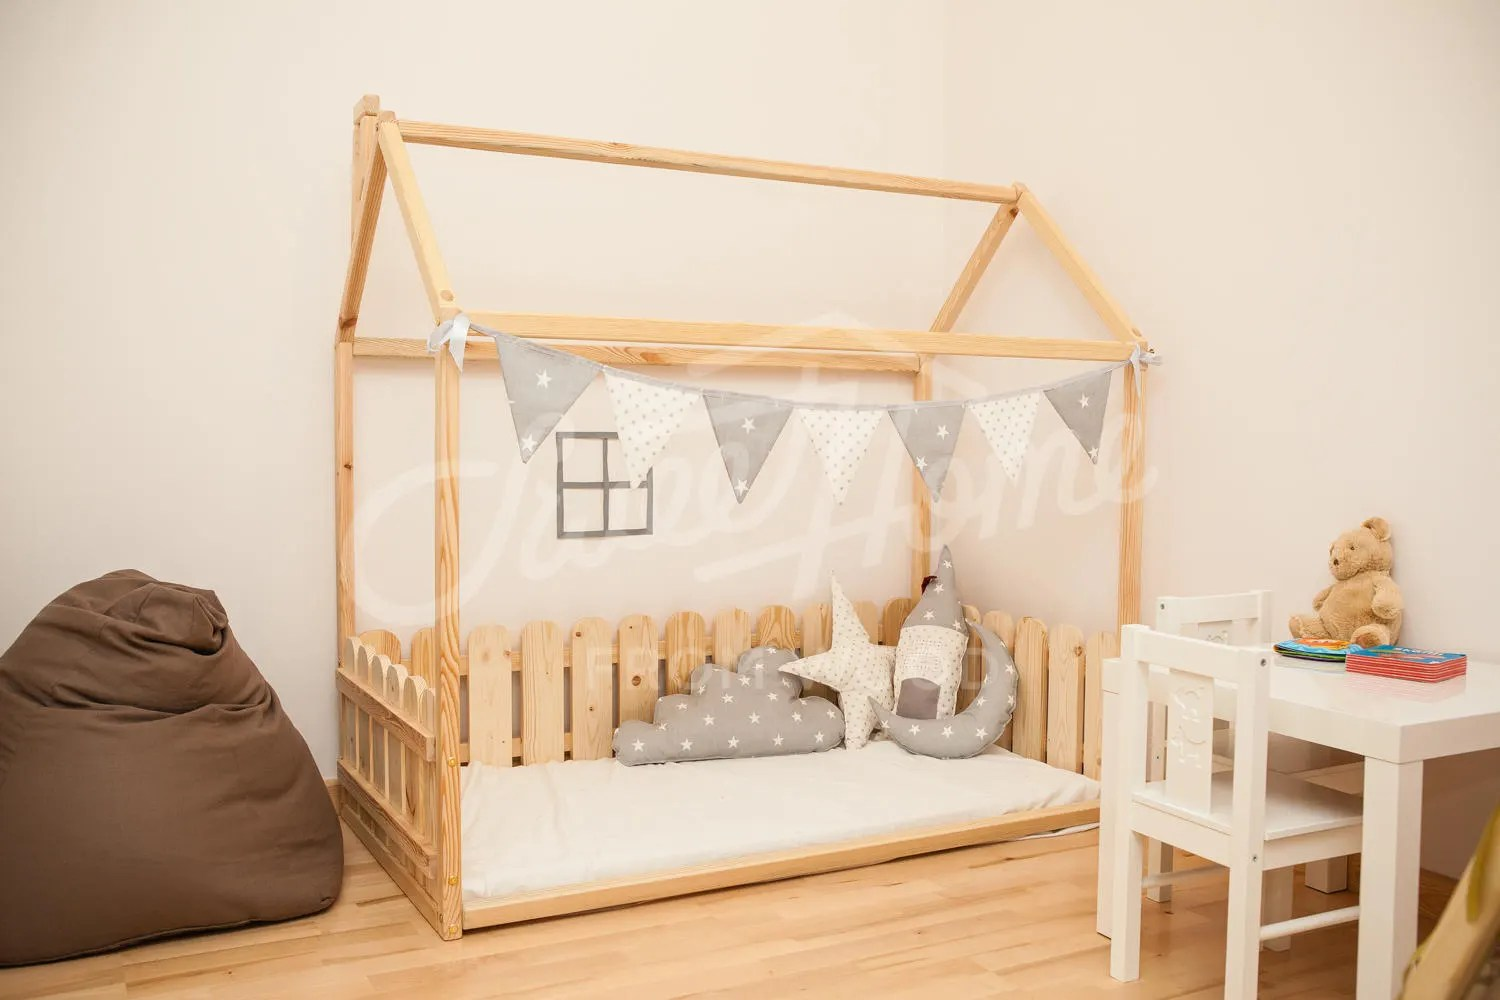 Montessori Montessori Room Floor Bed House Bed